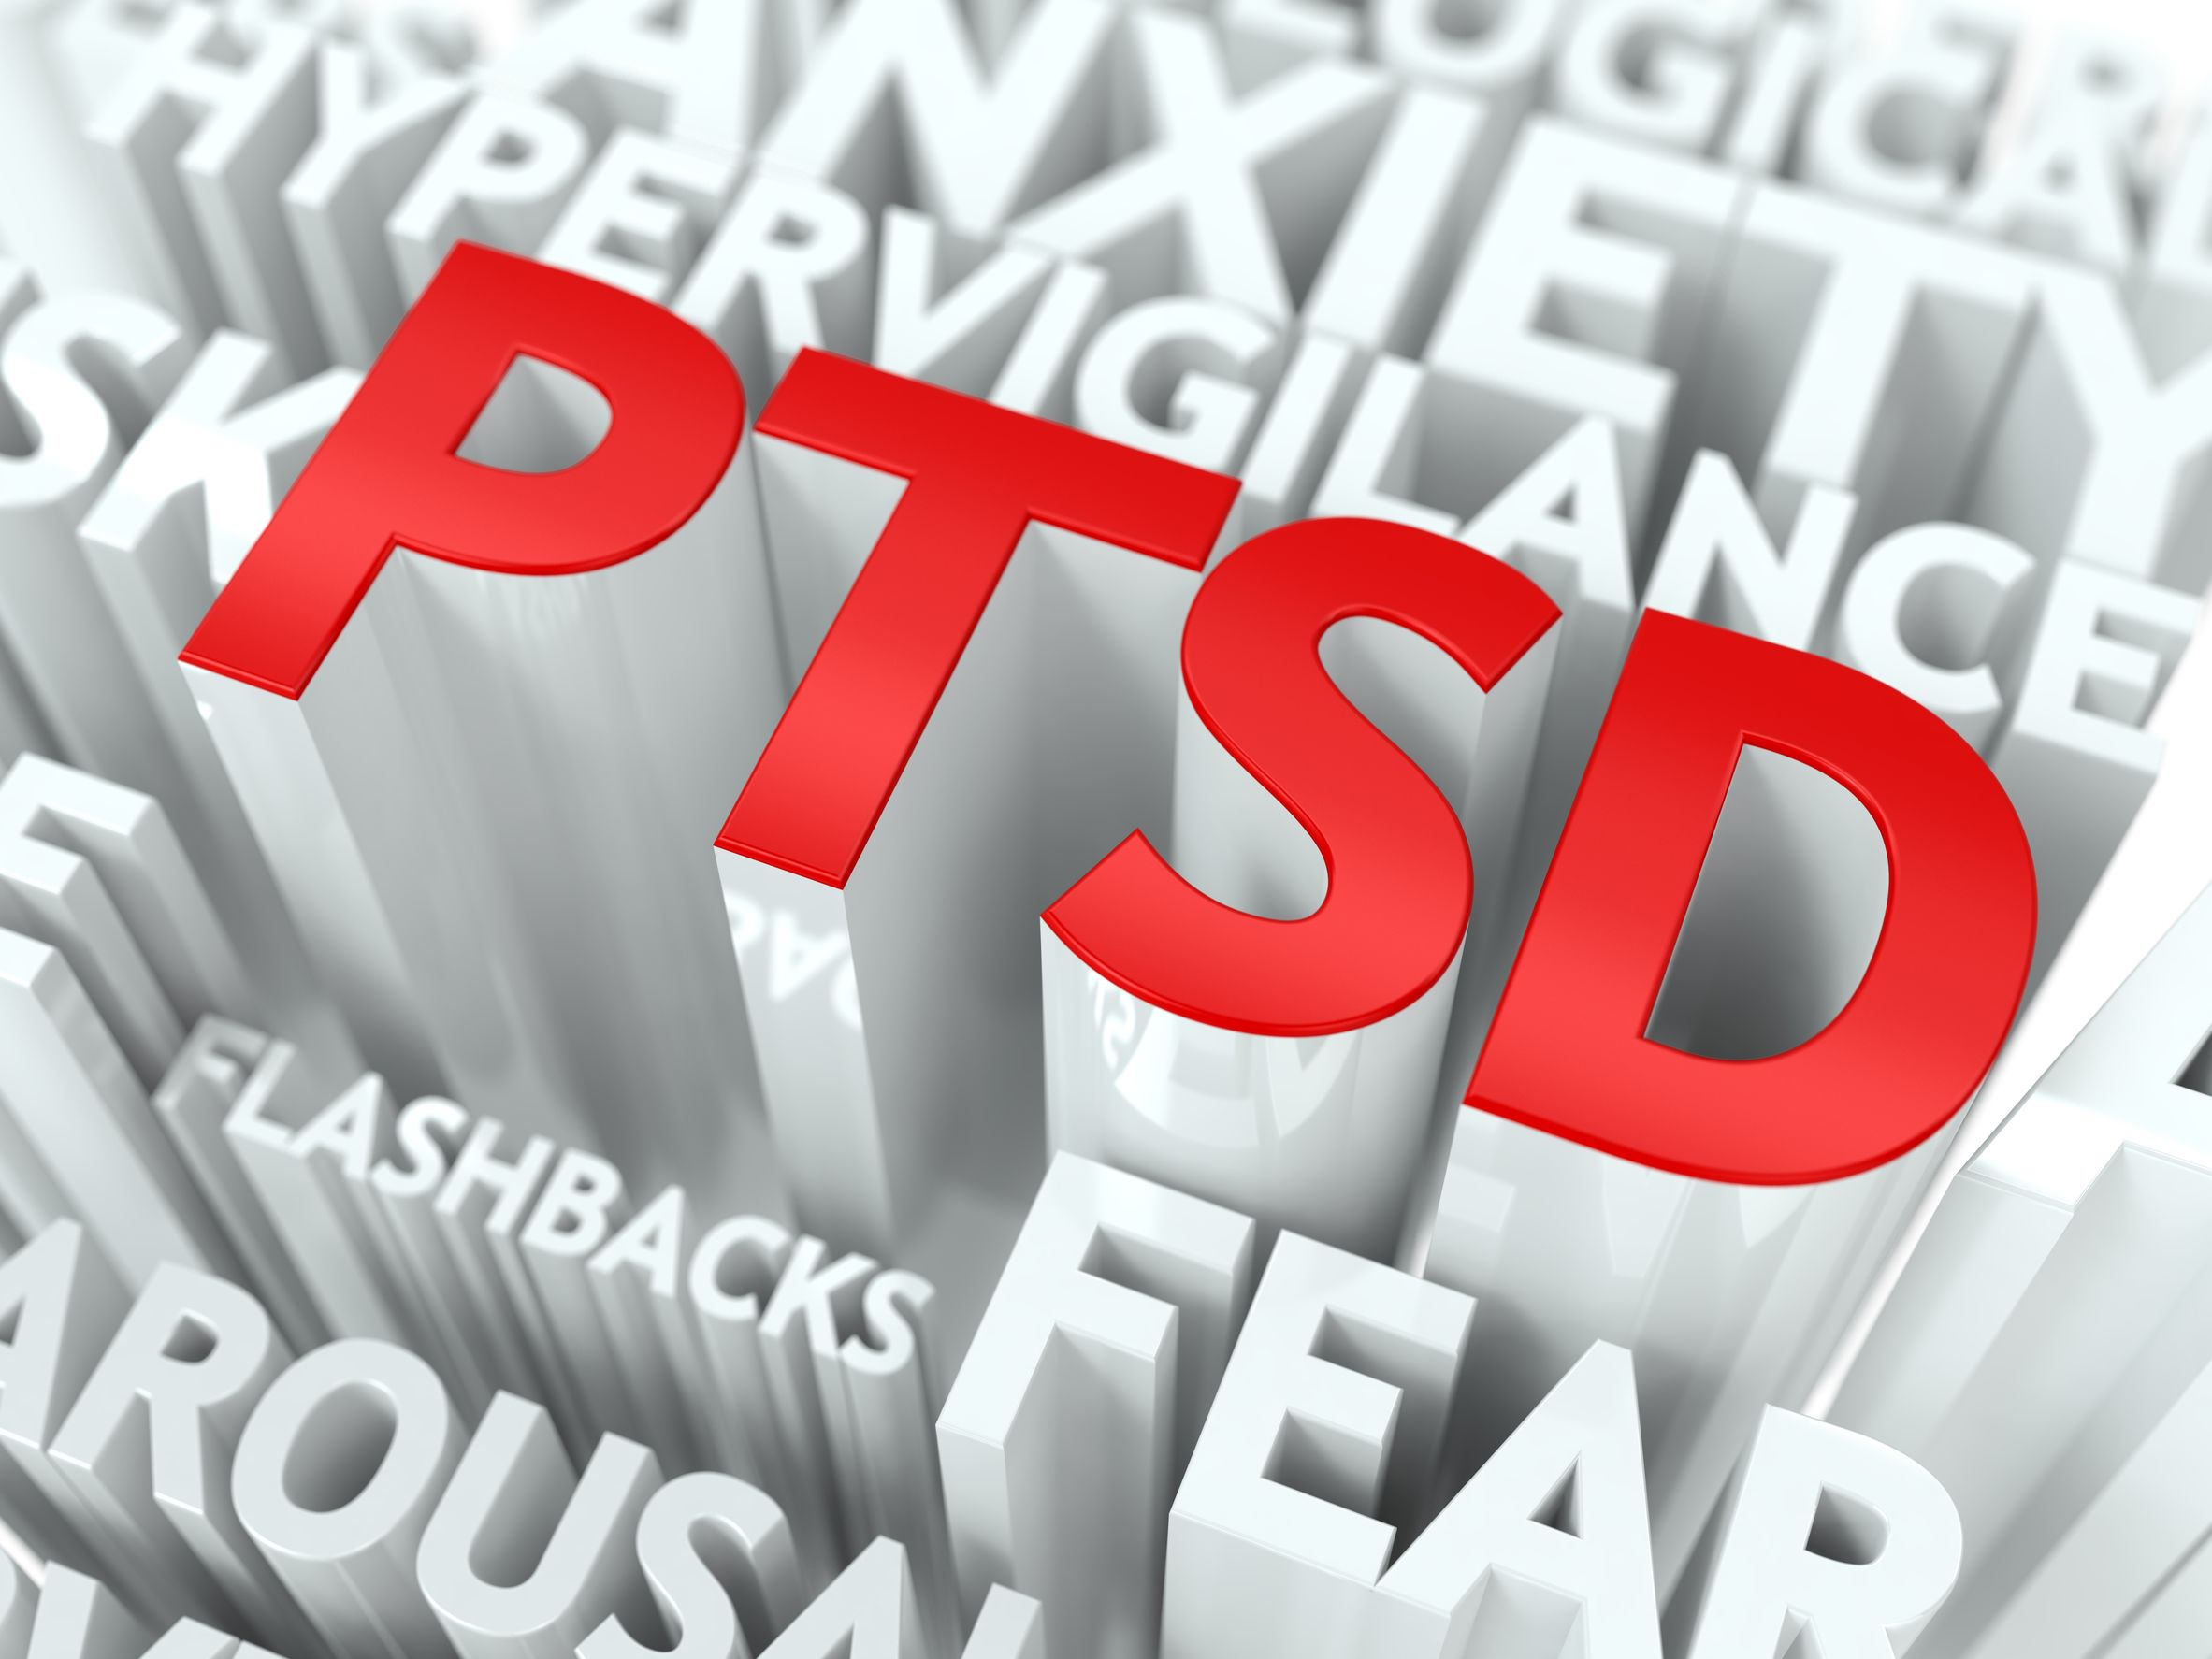 Study: Cannabinoids Offer Therapeutic Benefits for Post Traumatic Stress Disorder